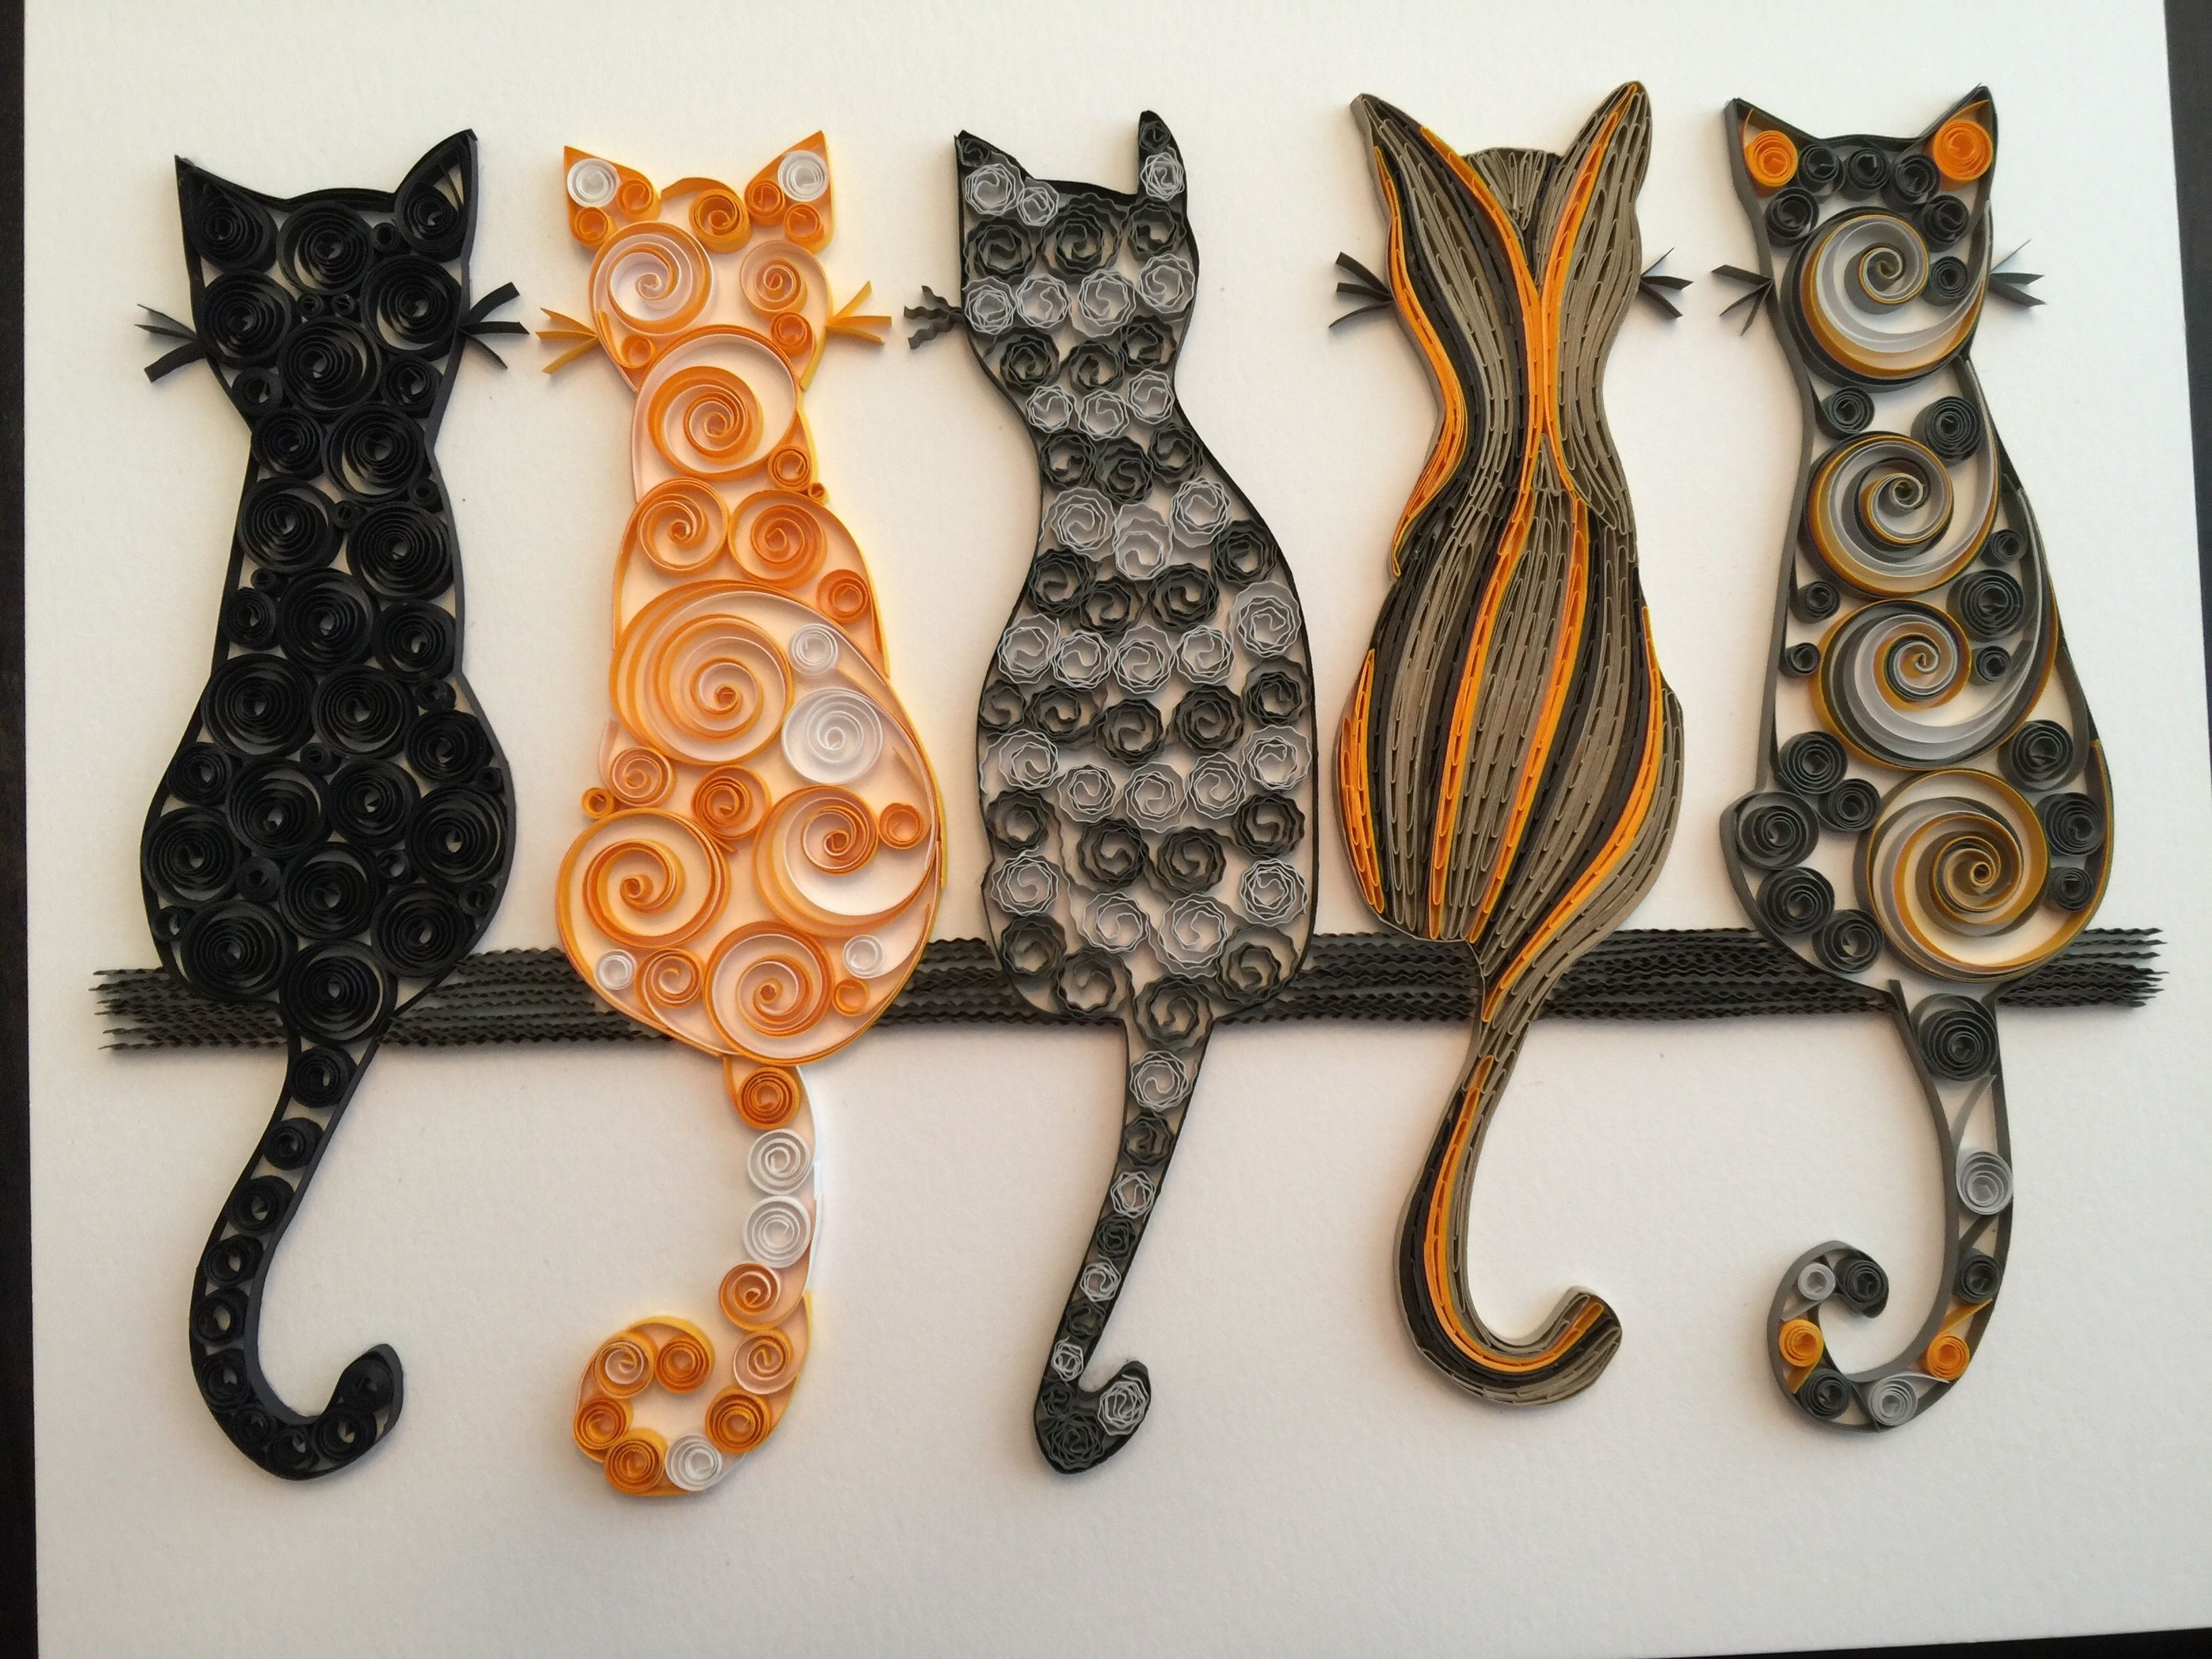 quilled cats quilling pinterest paperolles chats et creatif. Black Bedroom Furniture Sets. Home Design Ideas